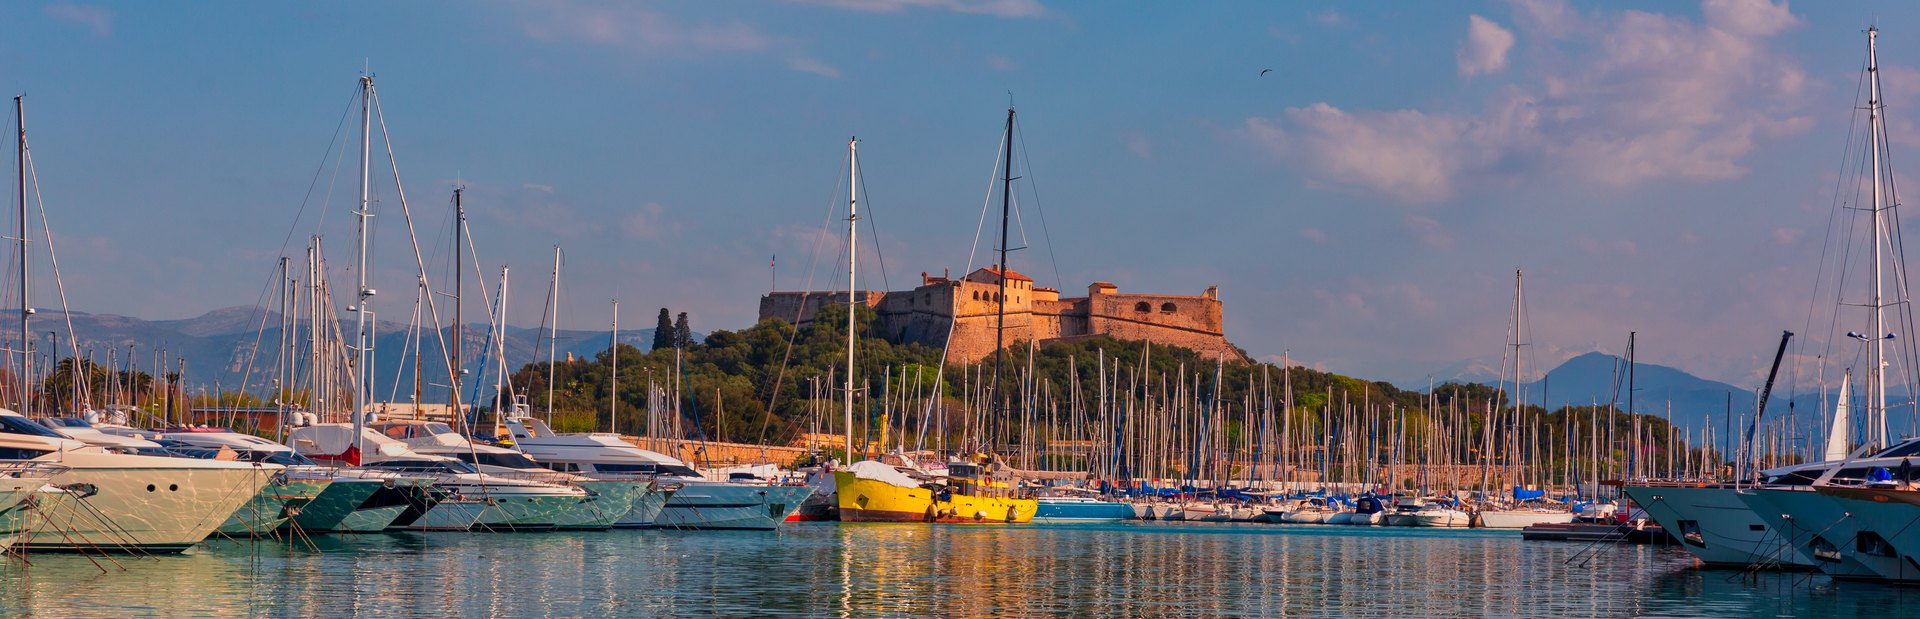 Things to see & do inAntibes